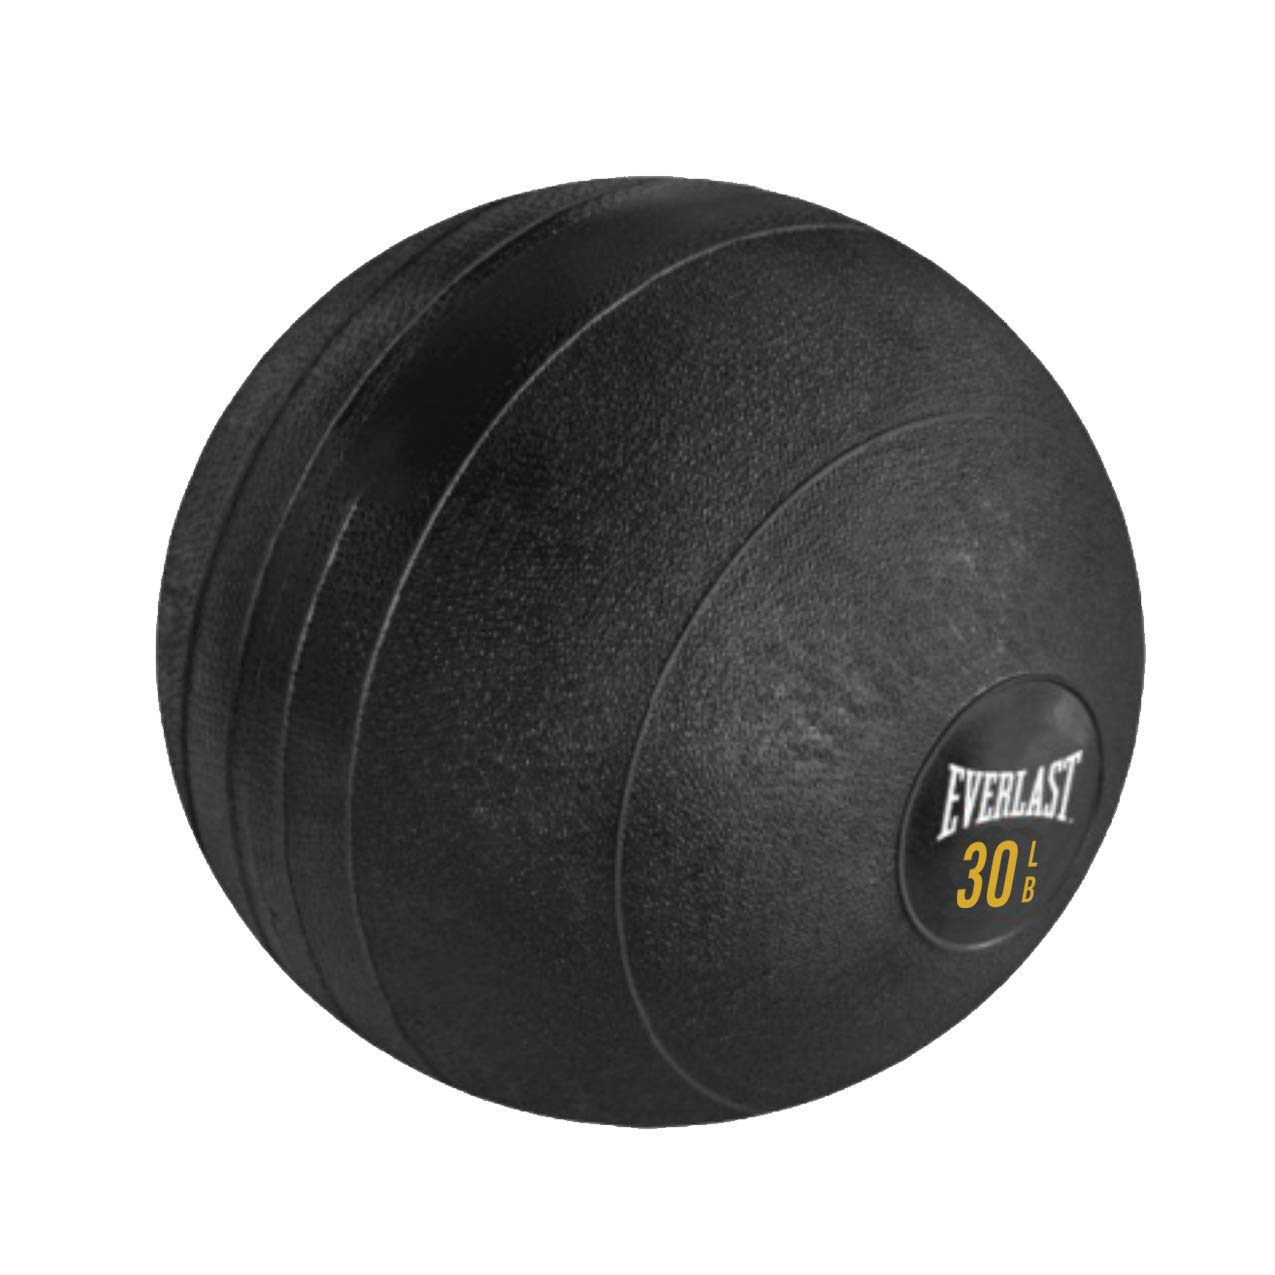 Everlast 30lb Flex Slam Ball Flex Slam Ball